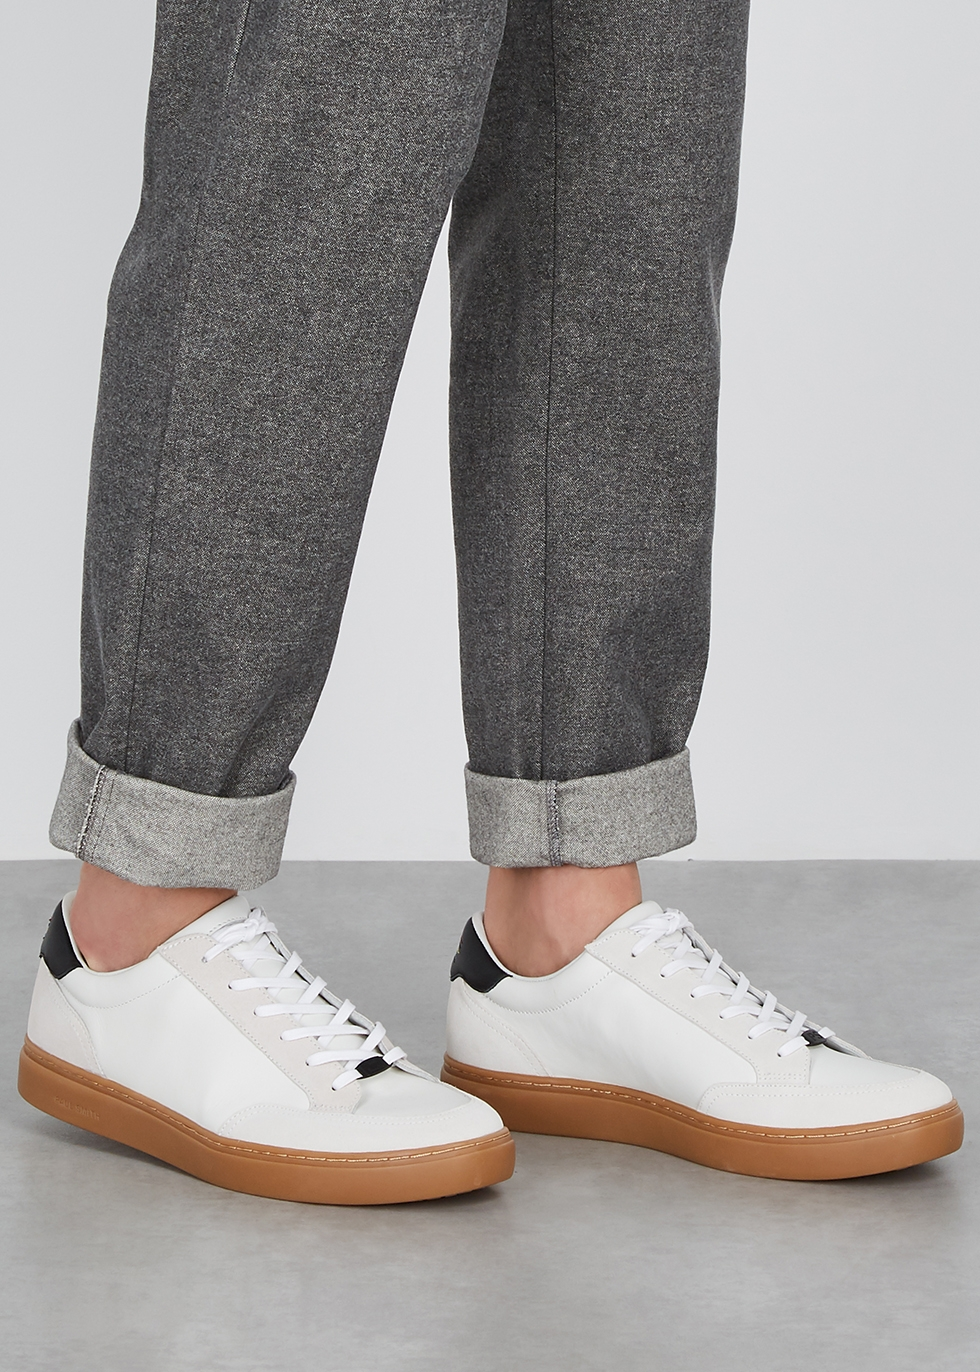 PS by Paul Smith Troy white leather and